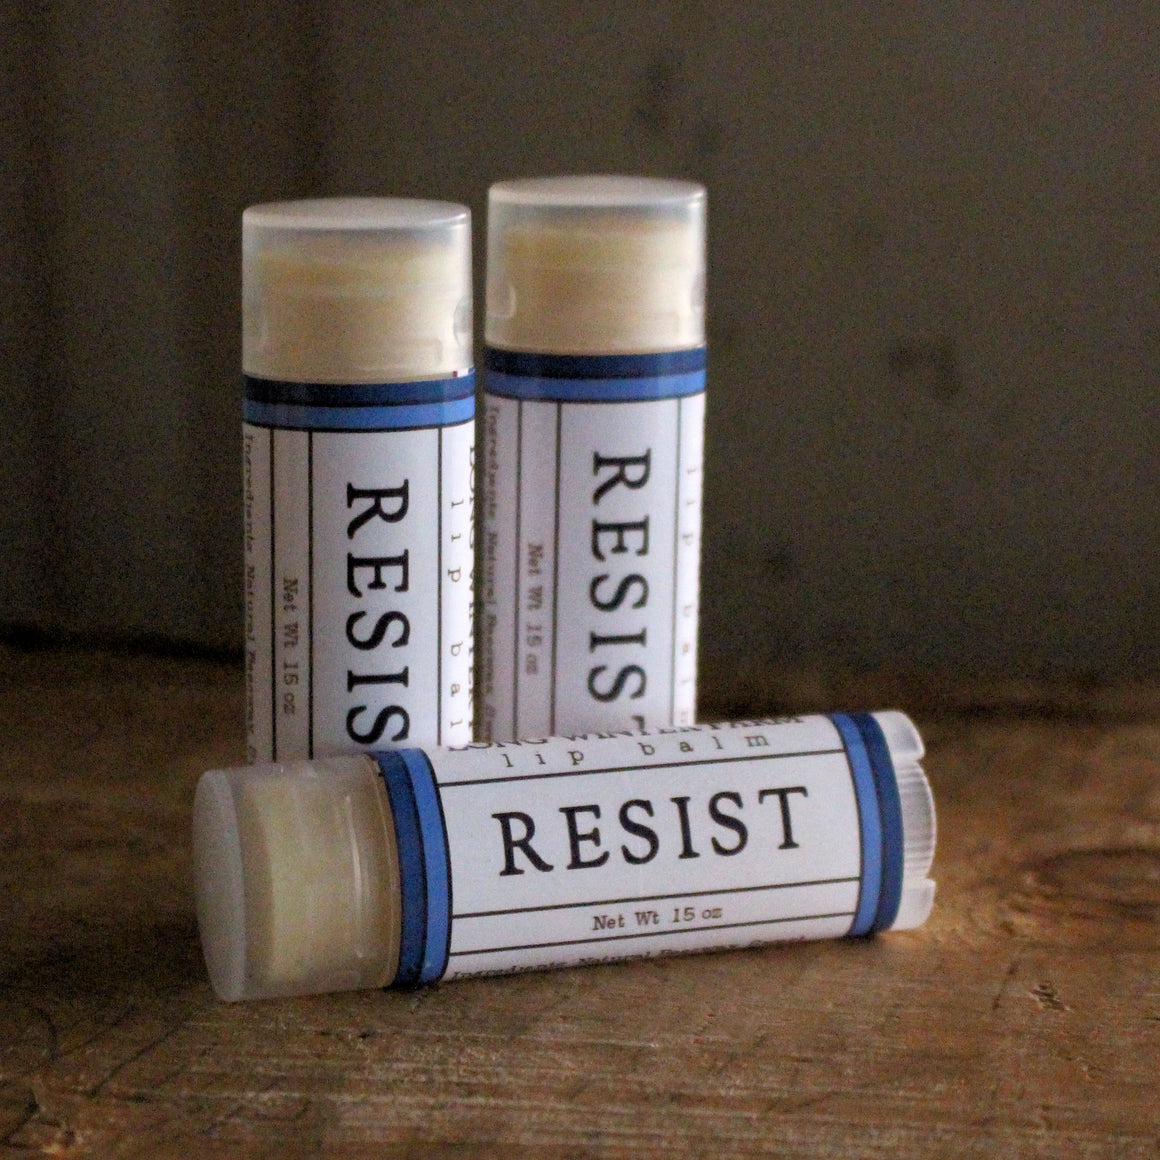 Resist Lip Balm - ACLU